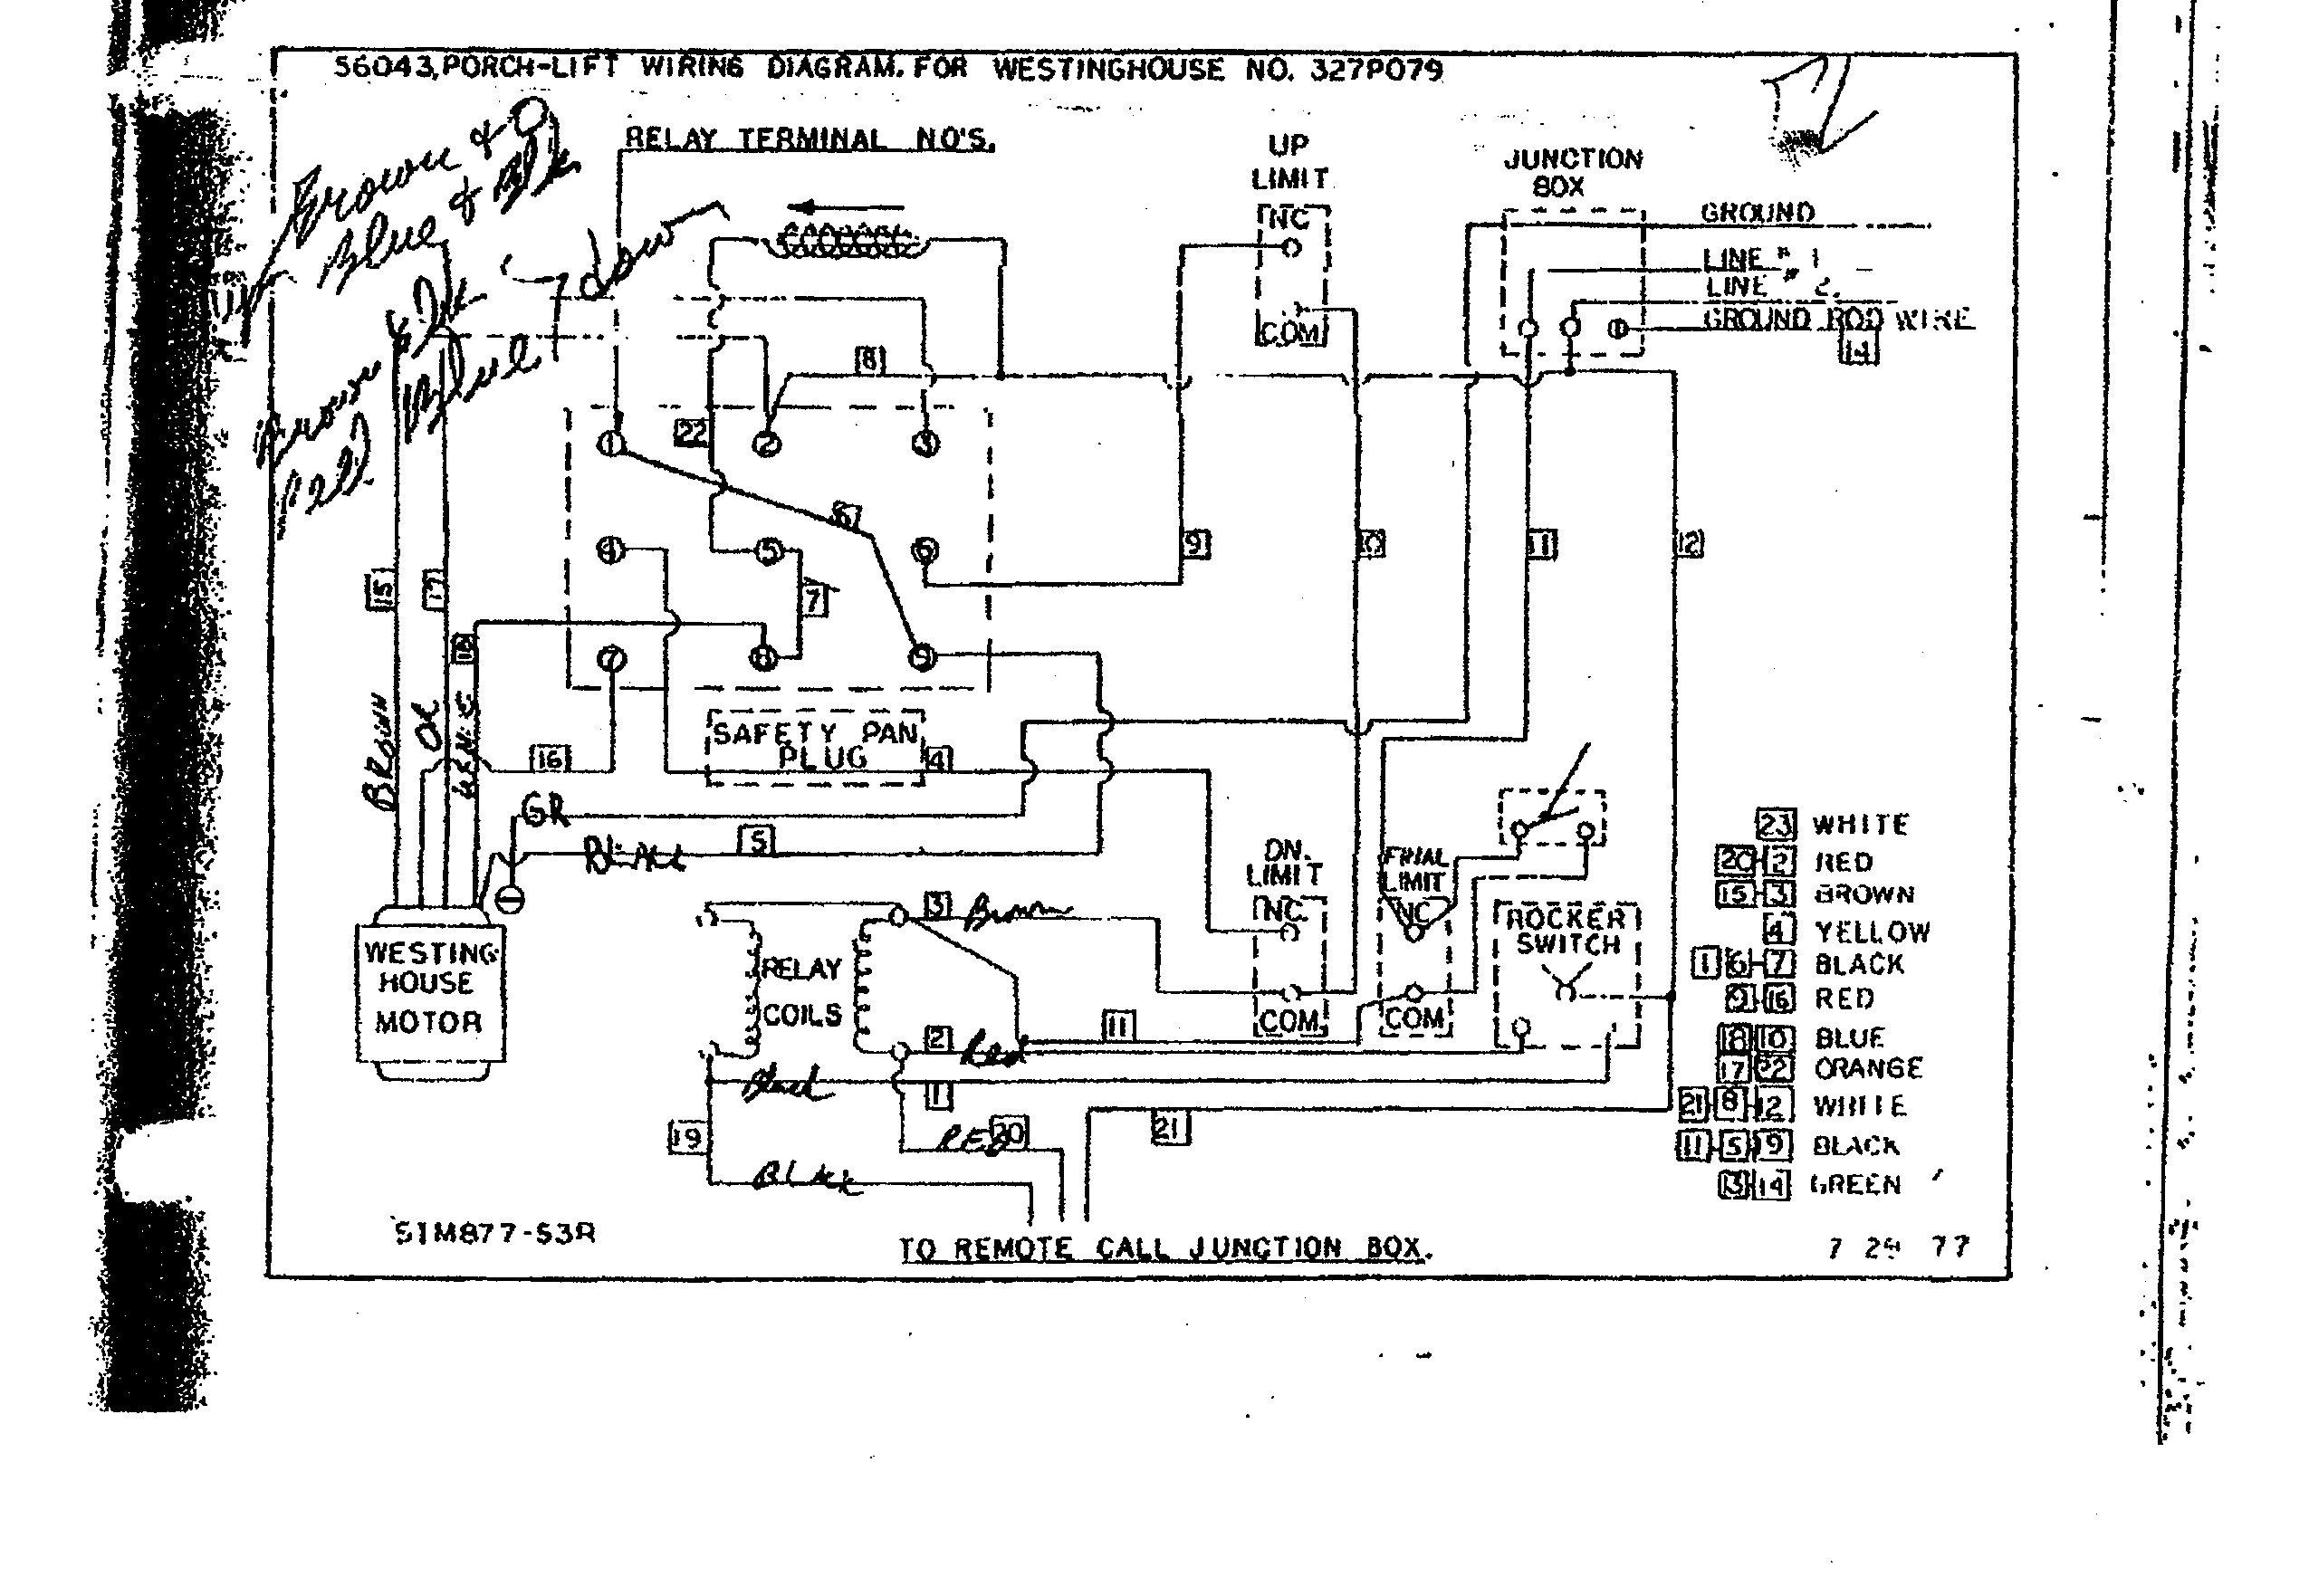 2011 01 04_160748_thyssenkrupp westinghouse motor wiring diagram westinghouse wiring diagrams  at gsmportal.co